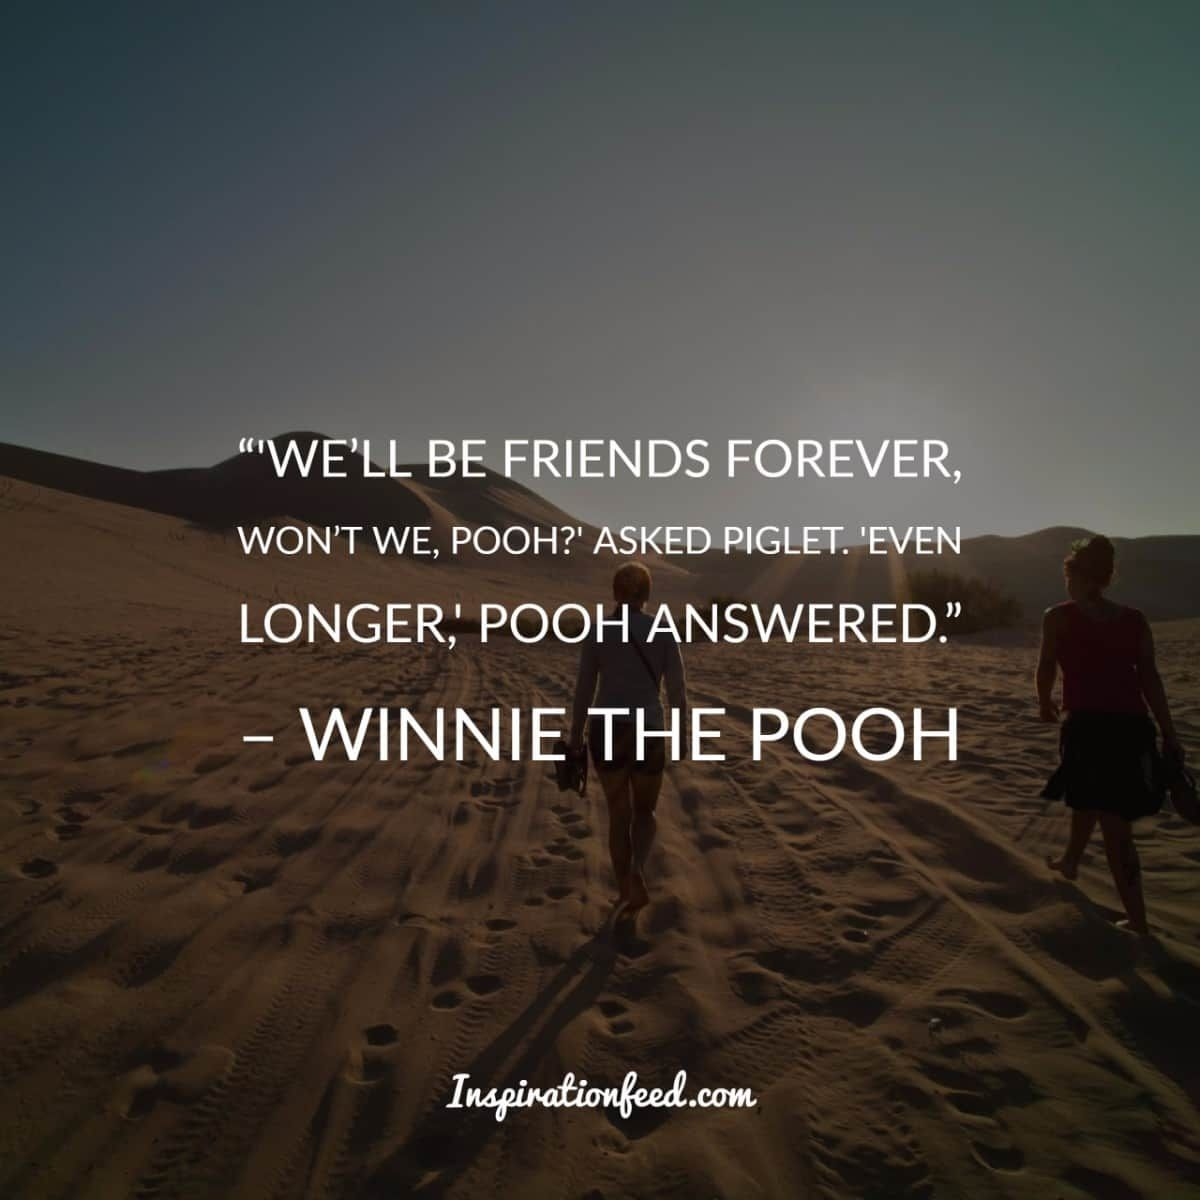 Inspirational Quotes About Friendships: 40 Friendship Quotes To Celebrate Your Friends